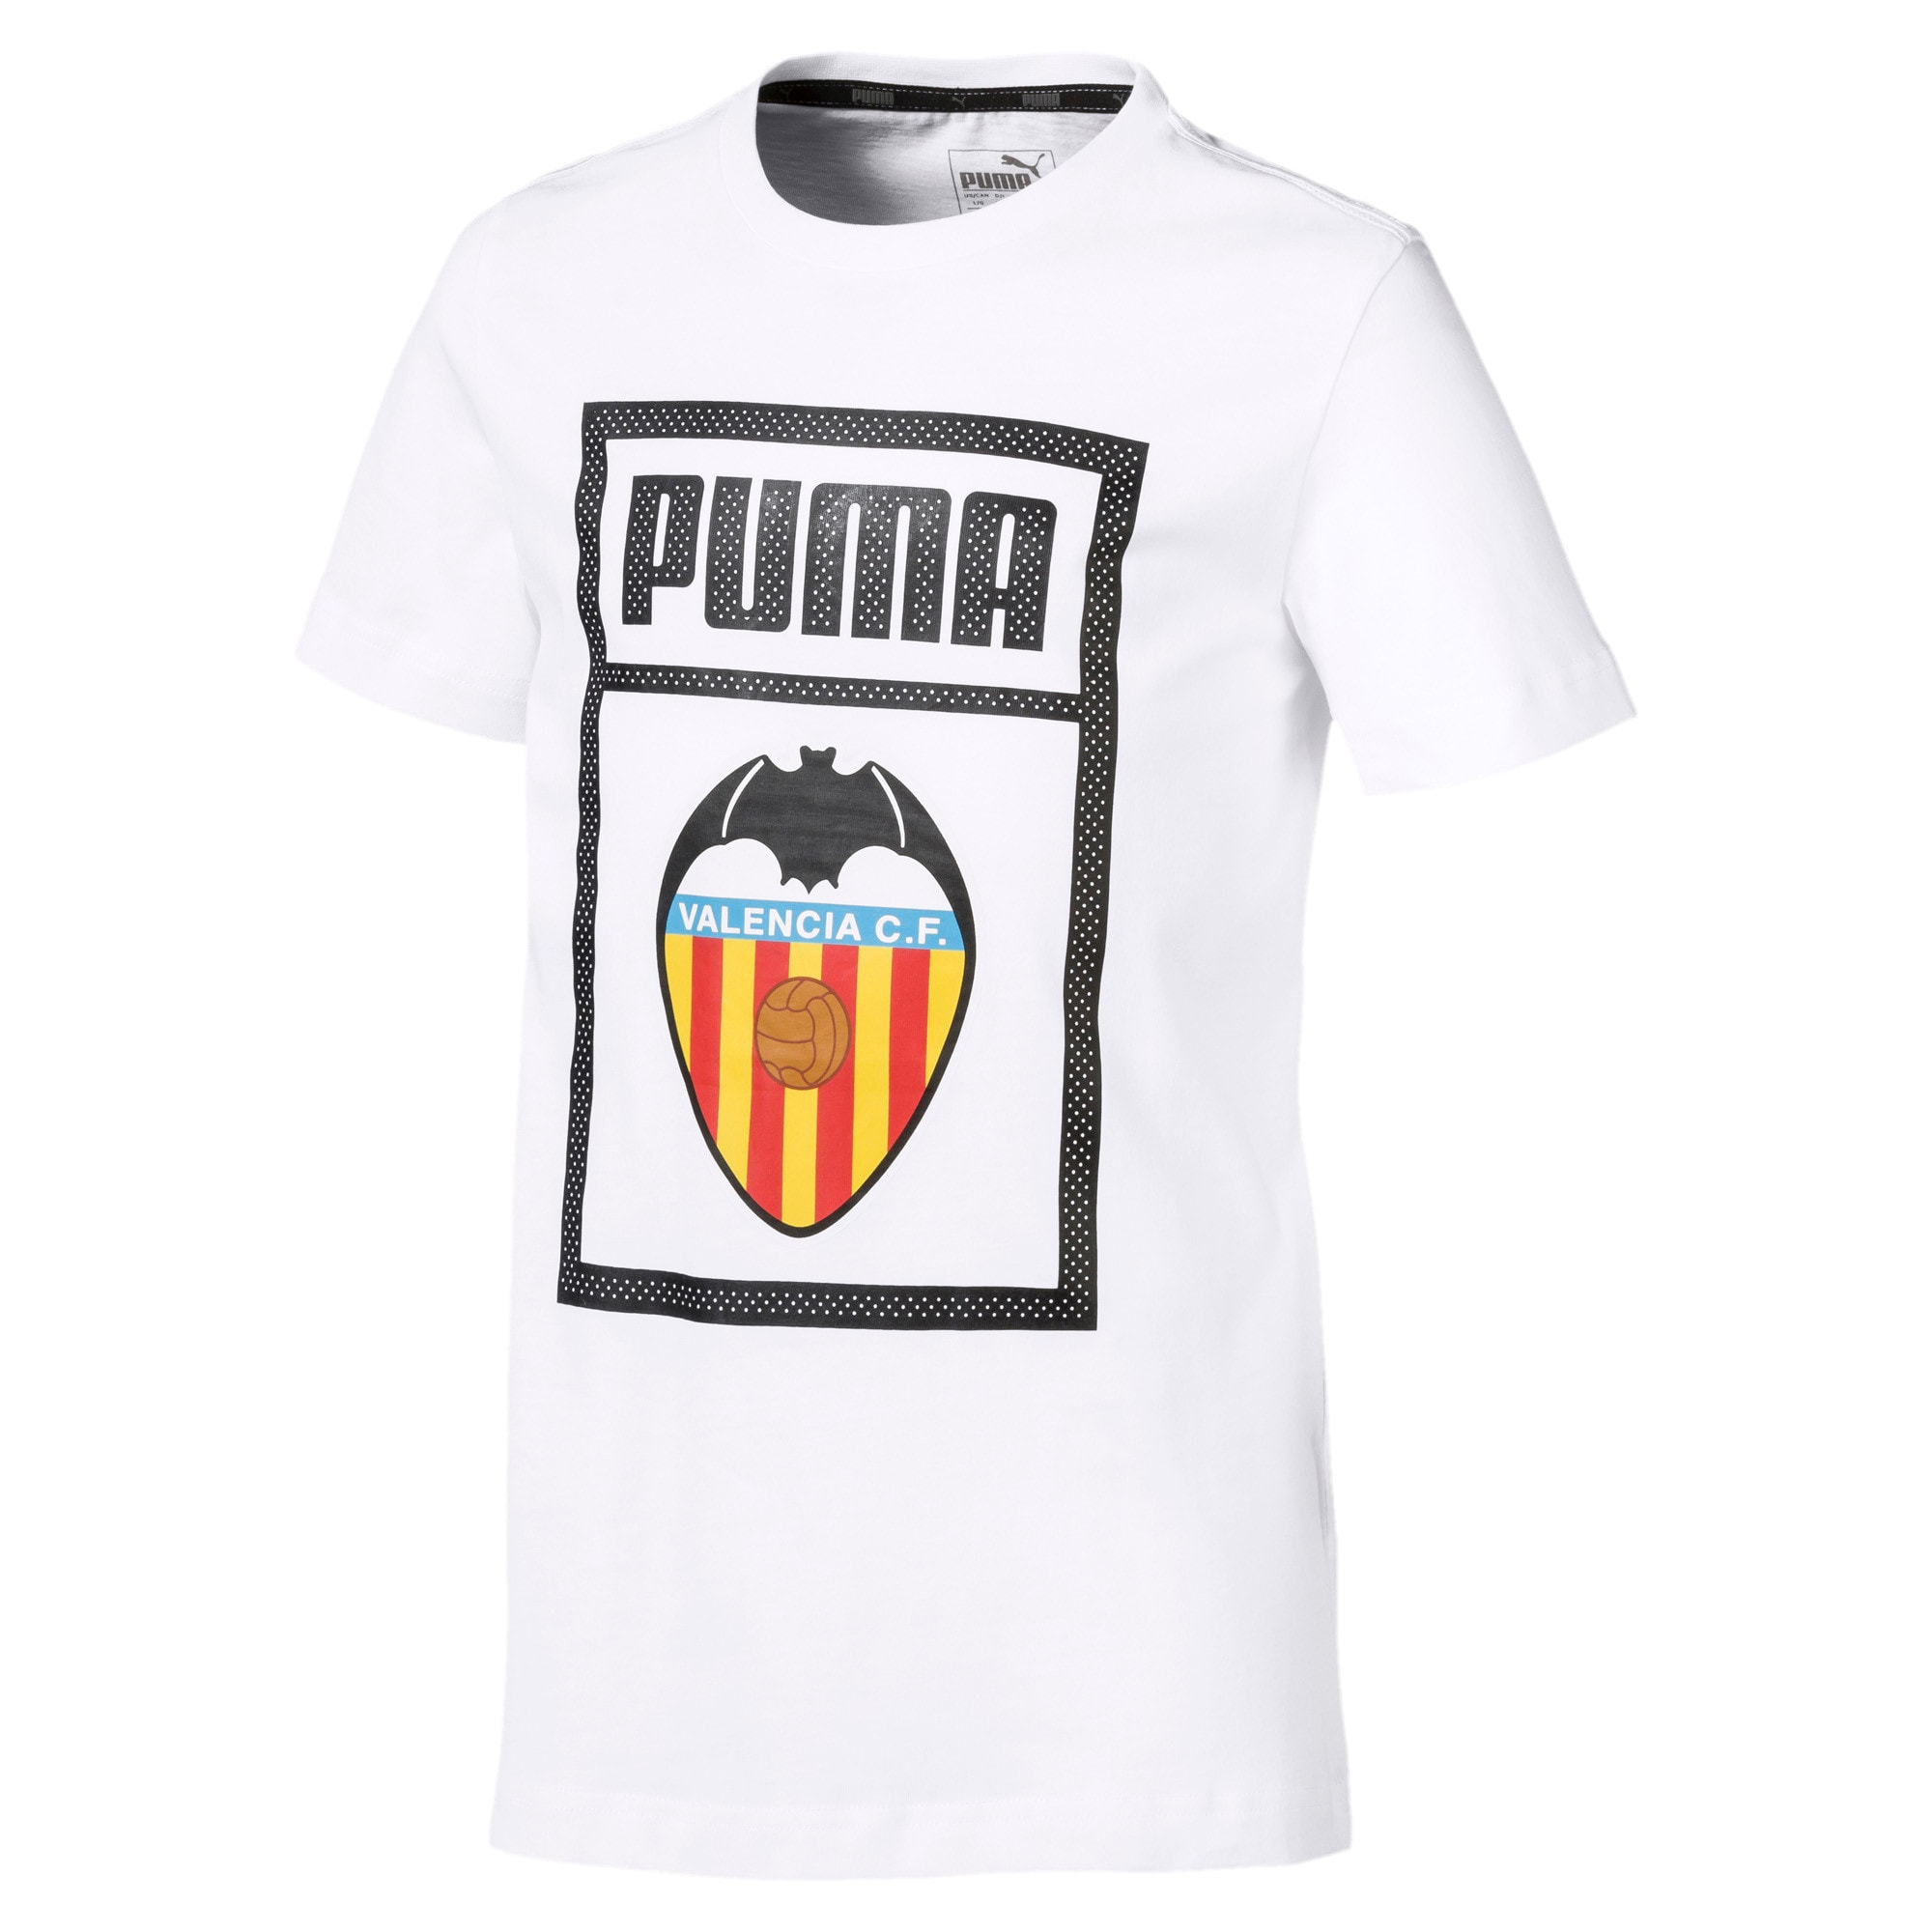 Thumbnail 1 of Valencia CF Shoe Tag Kinder T-Shirt, Puma White, medium